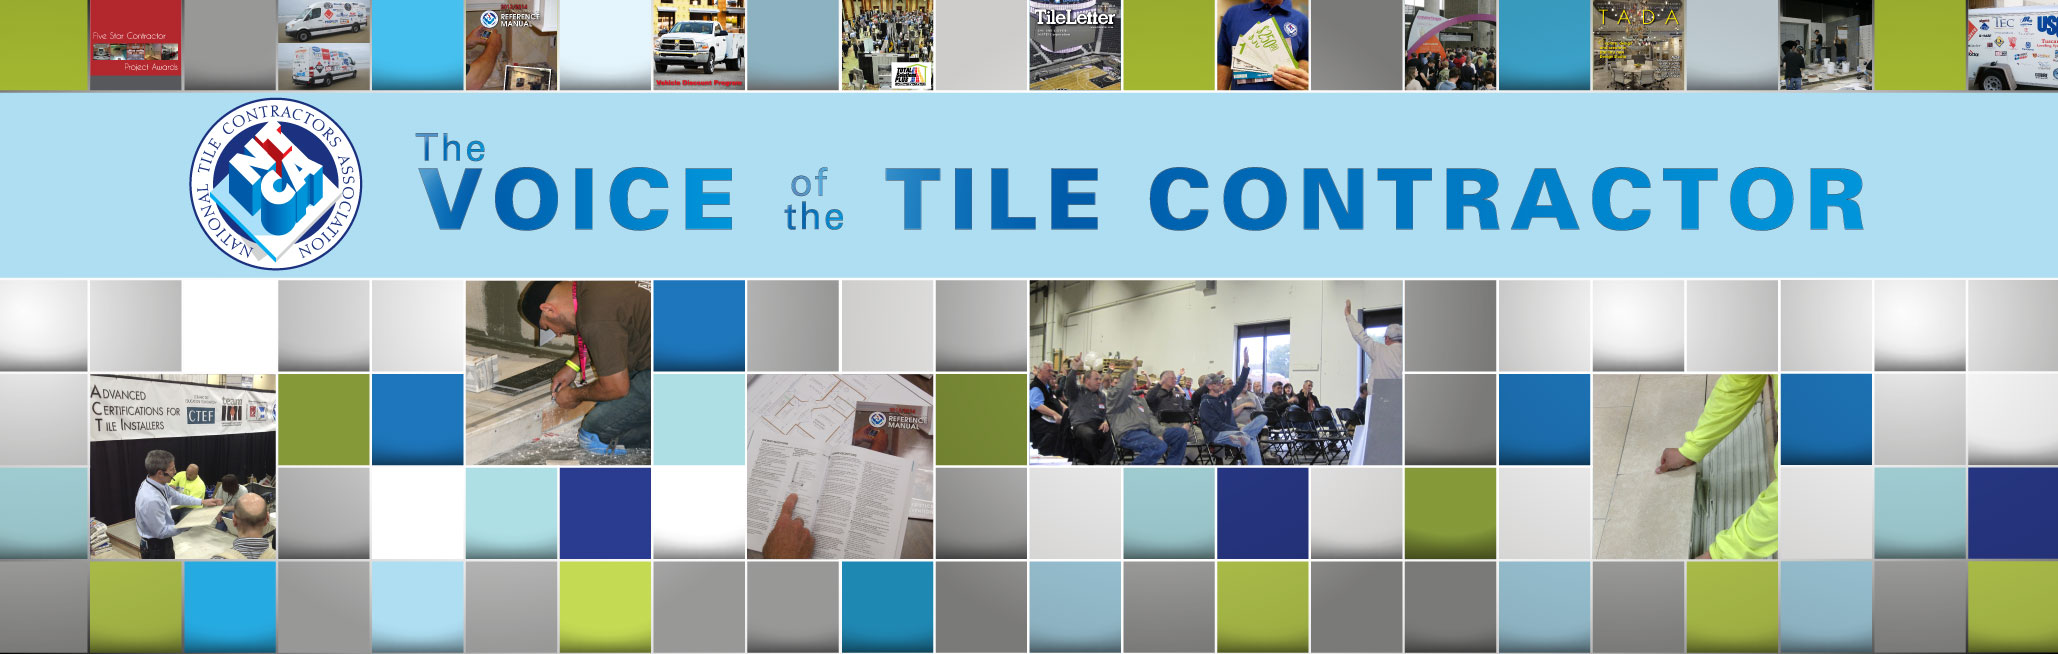 NTCA's new booth, designed by NTCA's Michelle Chapman, shows NTCA programs in a dynamic, graphic format.